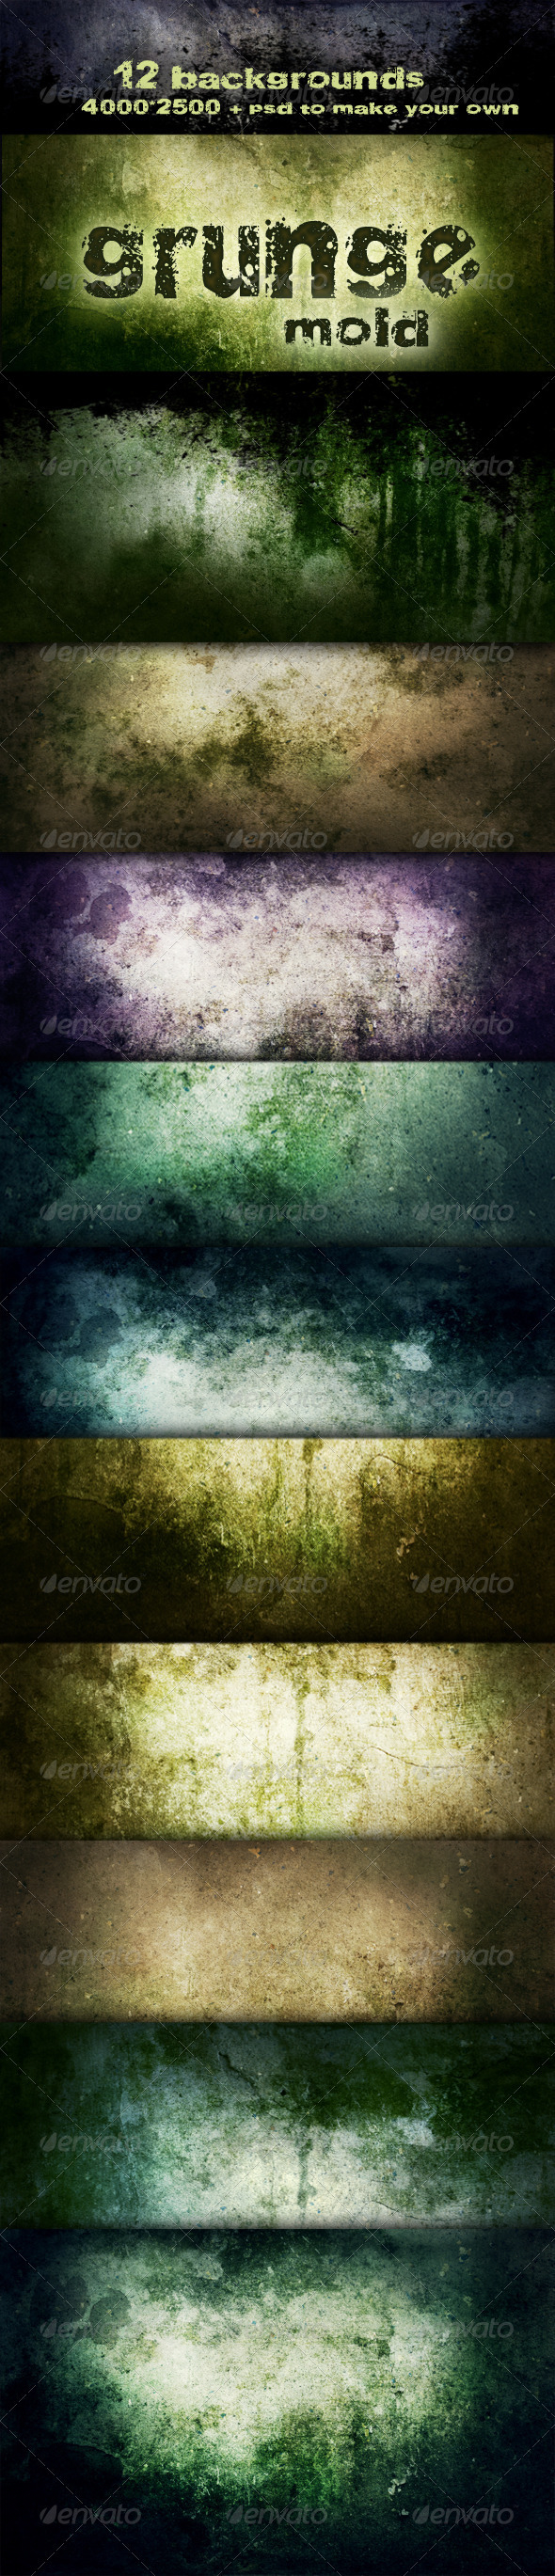 Grunge backgrounds - Mold decay - Backgrounds Graphics